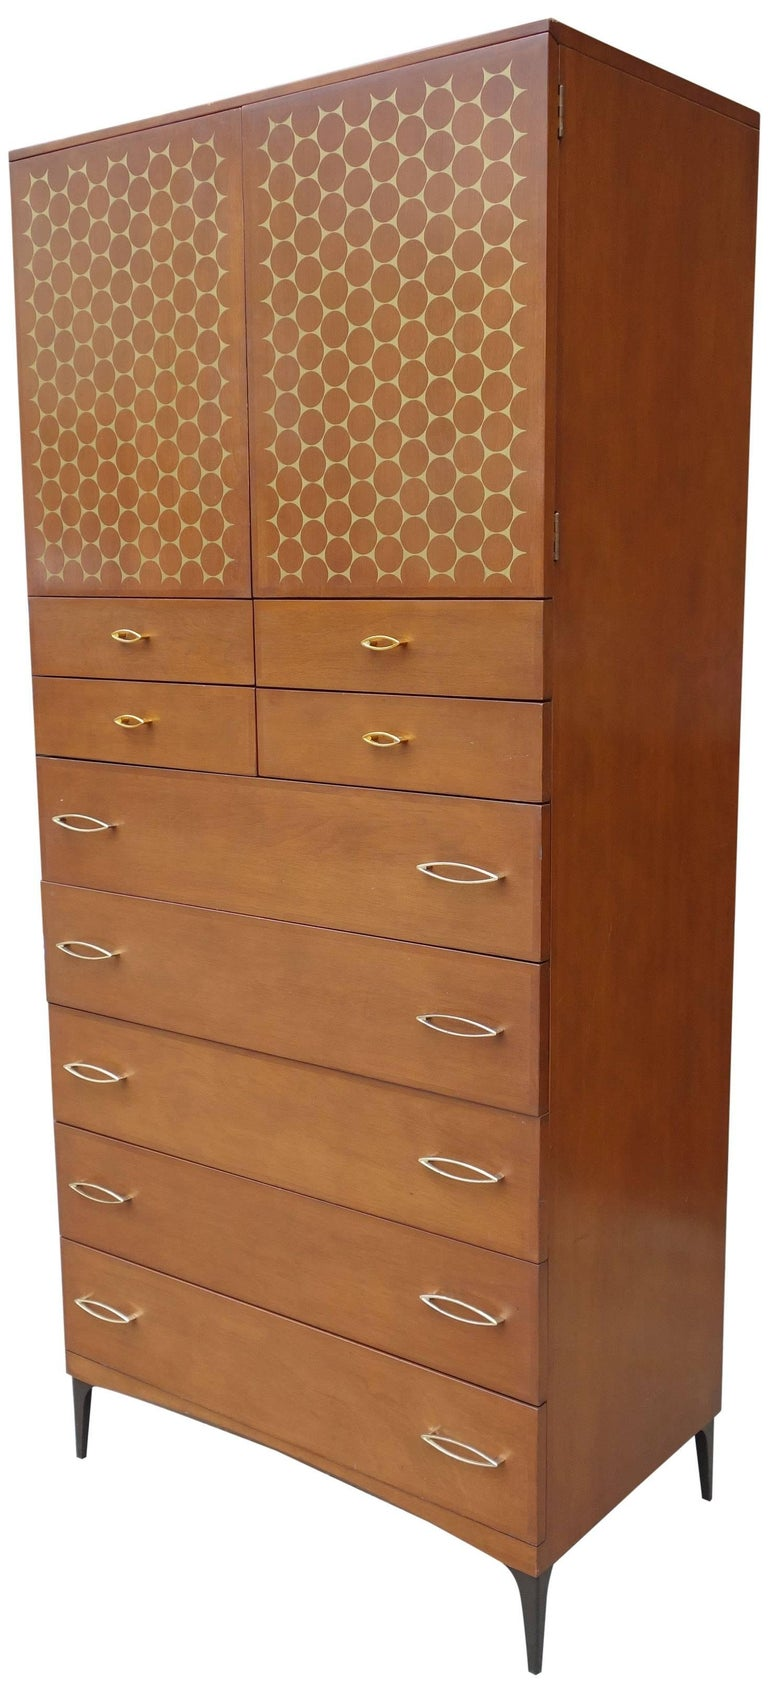 American Midcentury Heywood Wakfield Contessa Line by Carl Otto For Sale